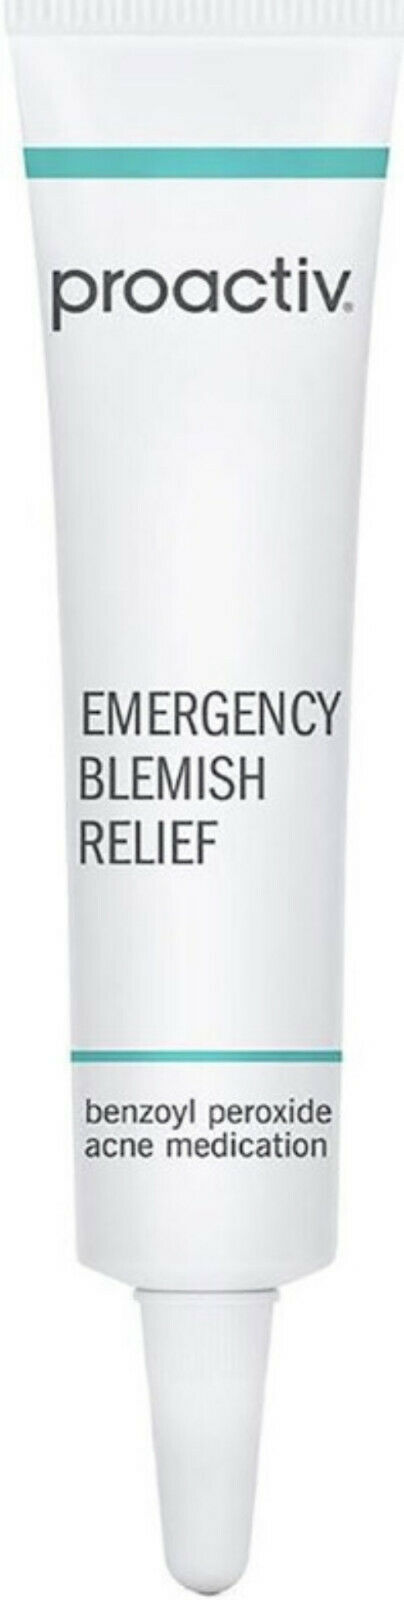 emergency blemish relief 33 oz exp 05